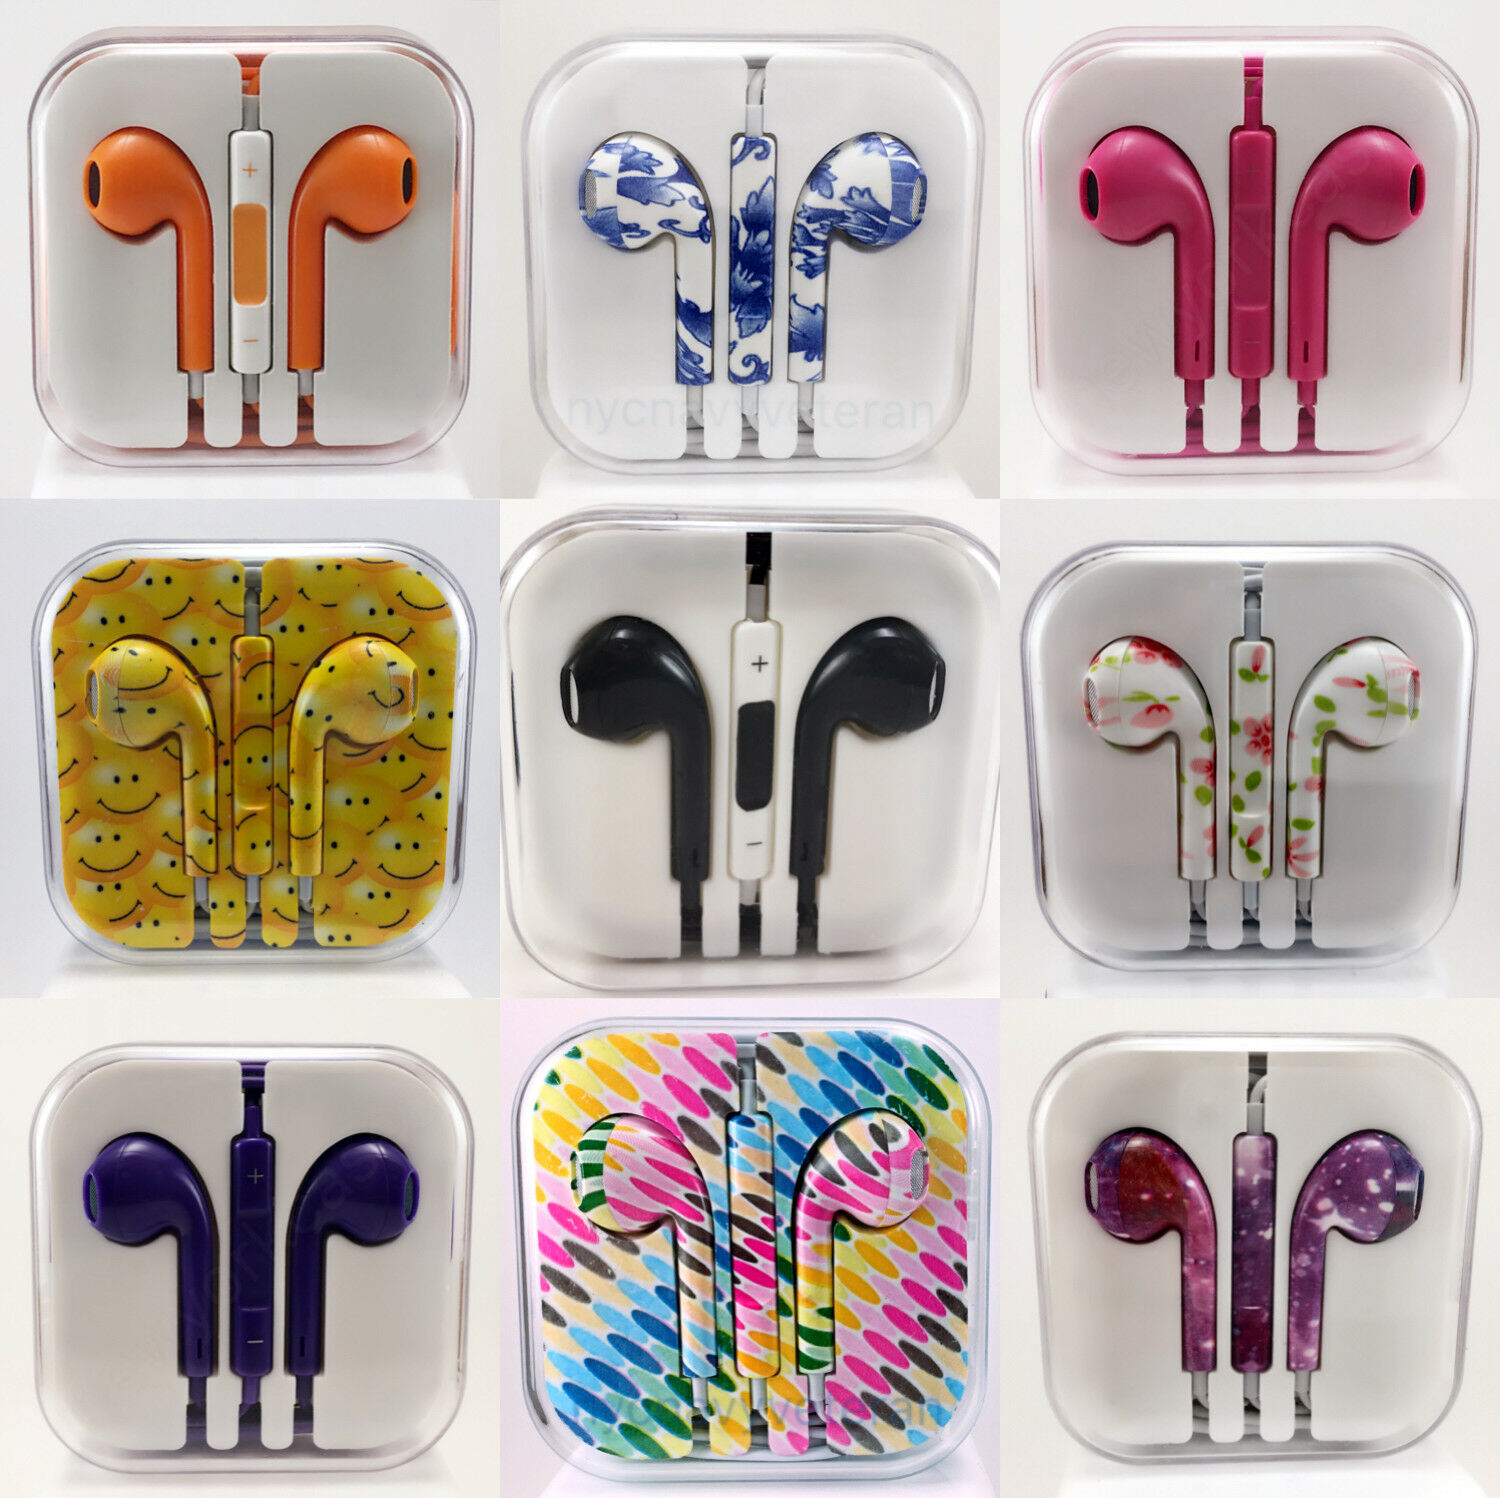 3.5mm Earbuds Earphones Headphones Headsets For iPhone and Samsung Remote & Mic